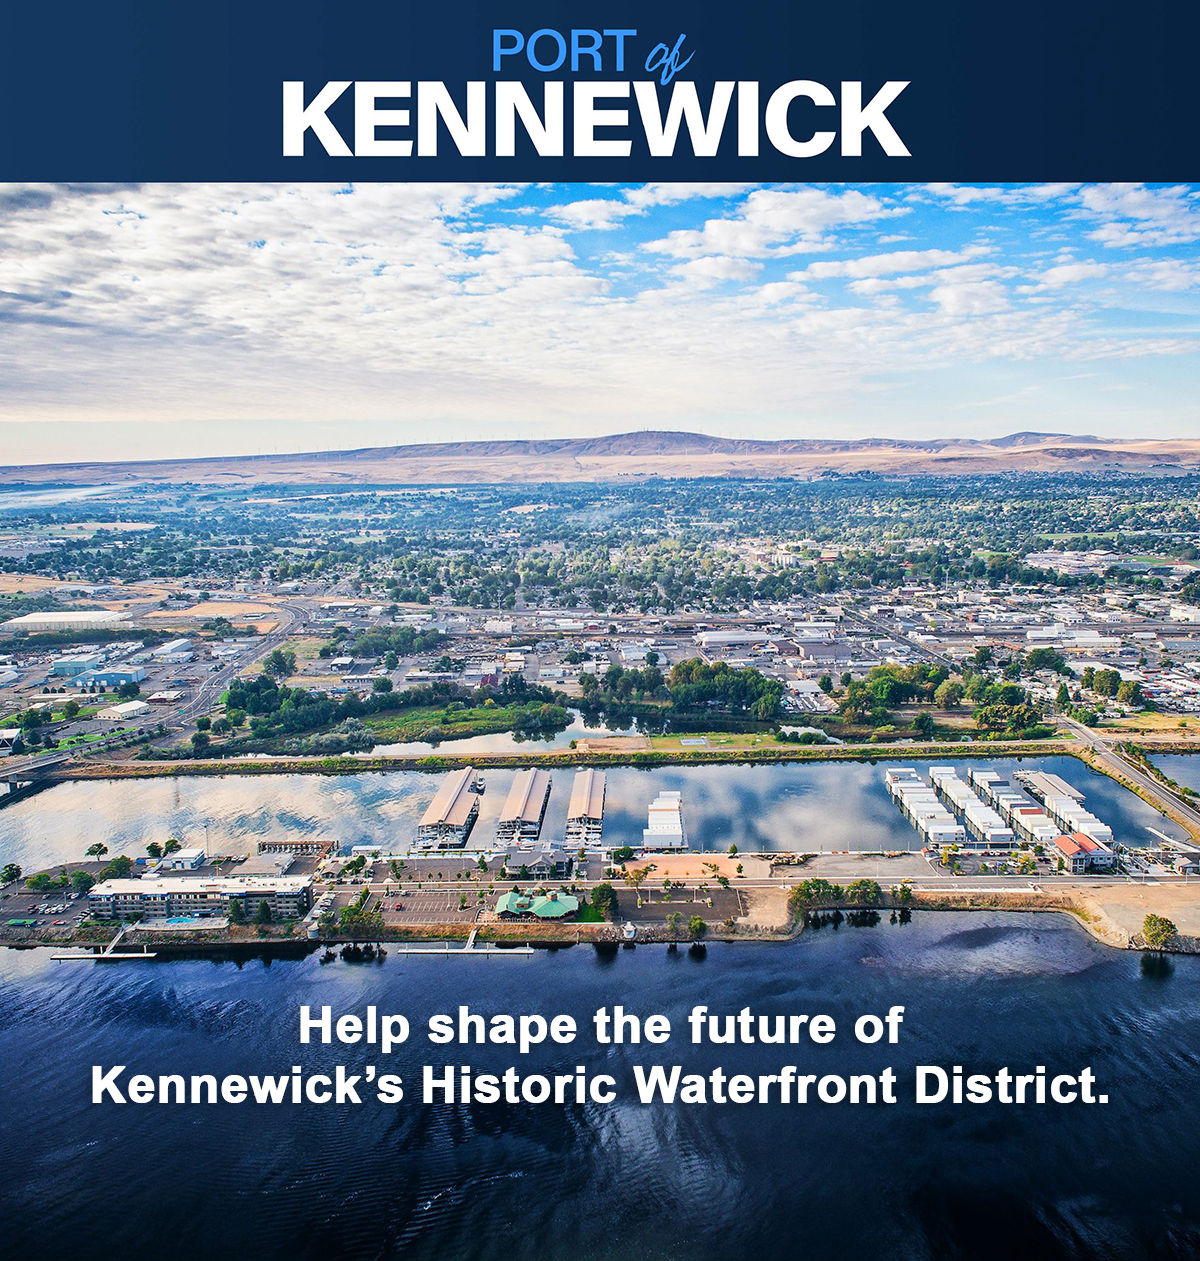 Graphic requesting public input on future development plans for Kennewick's Historic Waterfront District.